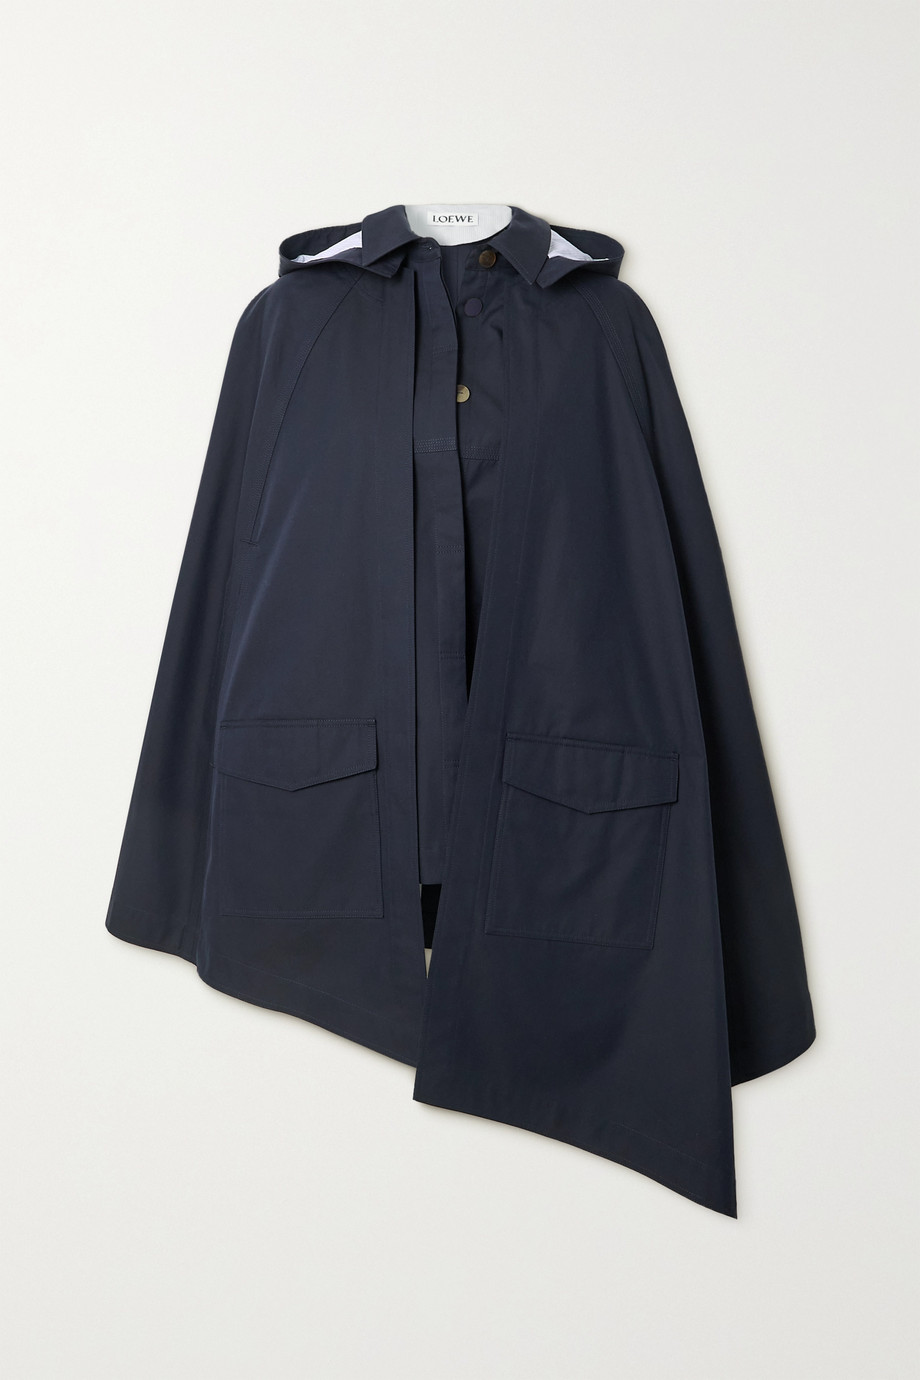 Loewe Convertible hooded leather-trimmed cotton-twill cape